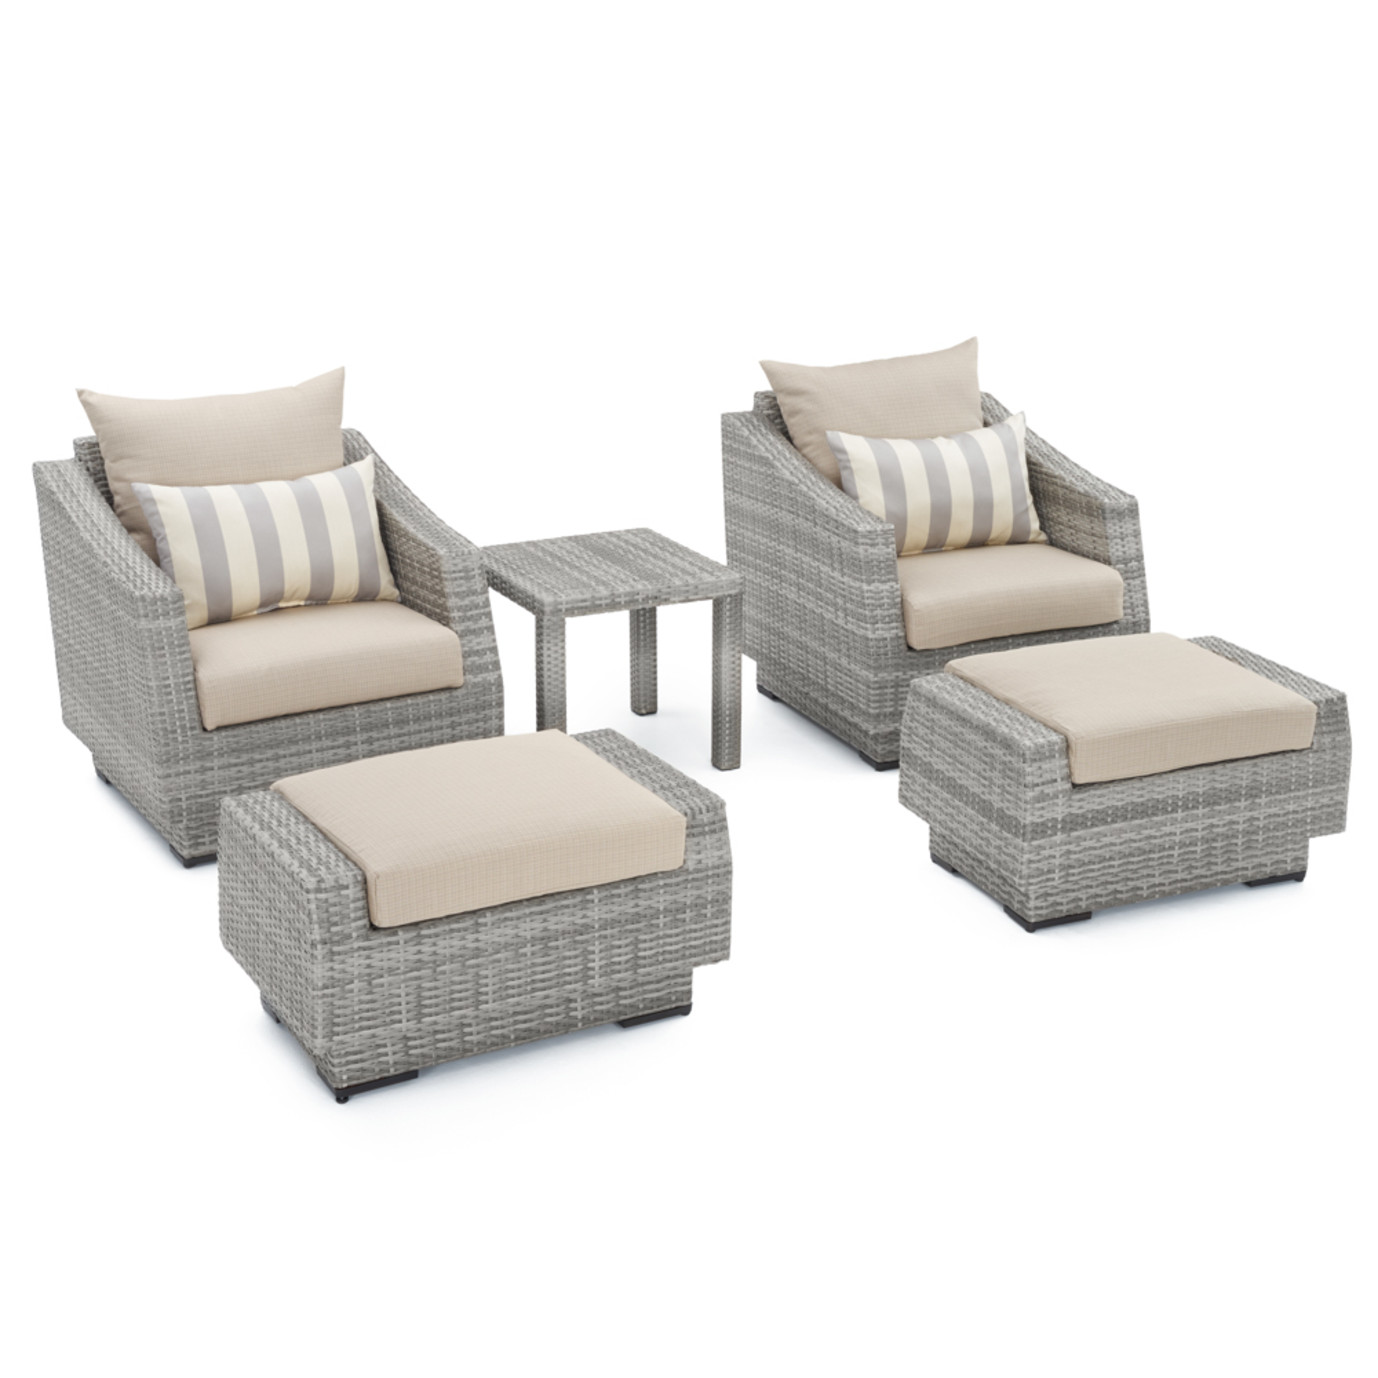 Cannes™ 5pc Club Chair and Ottoman Set - Slate Gray